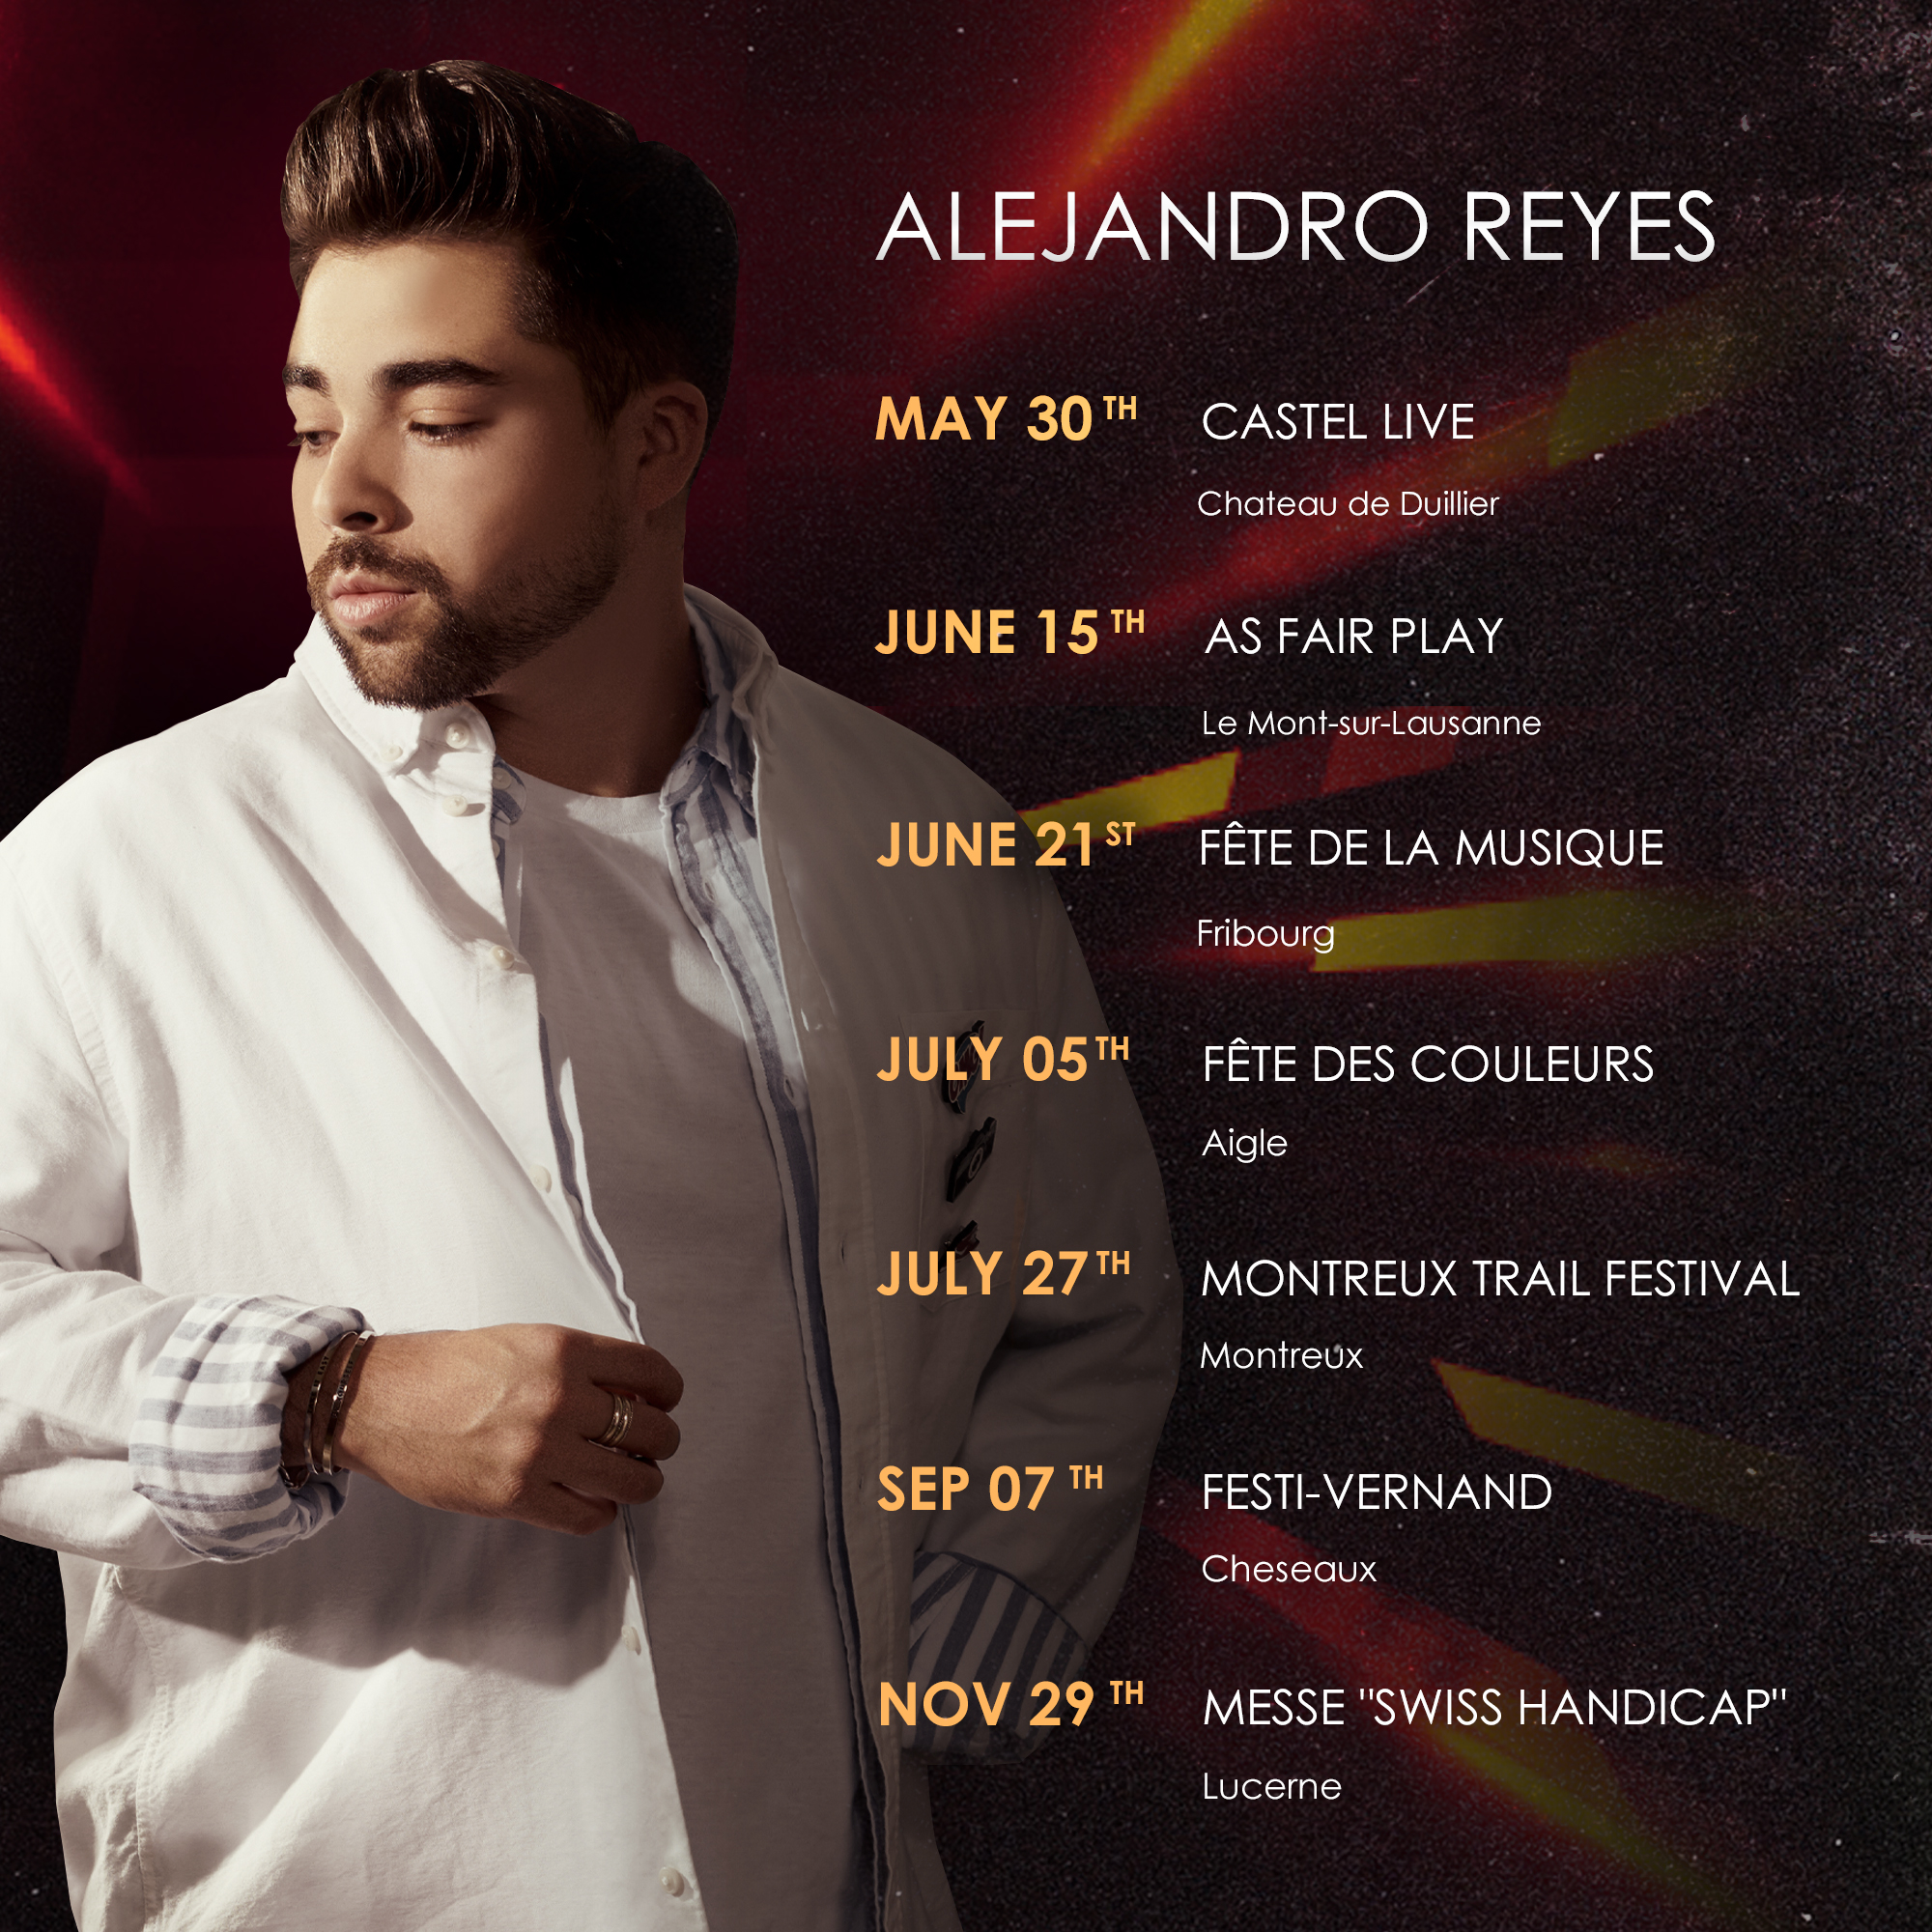 Alejandro Reyes events